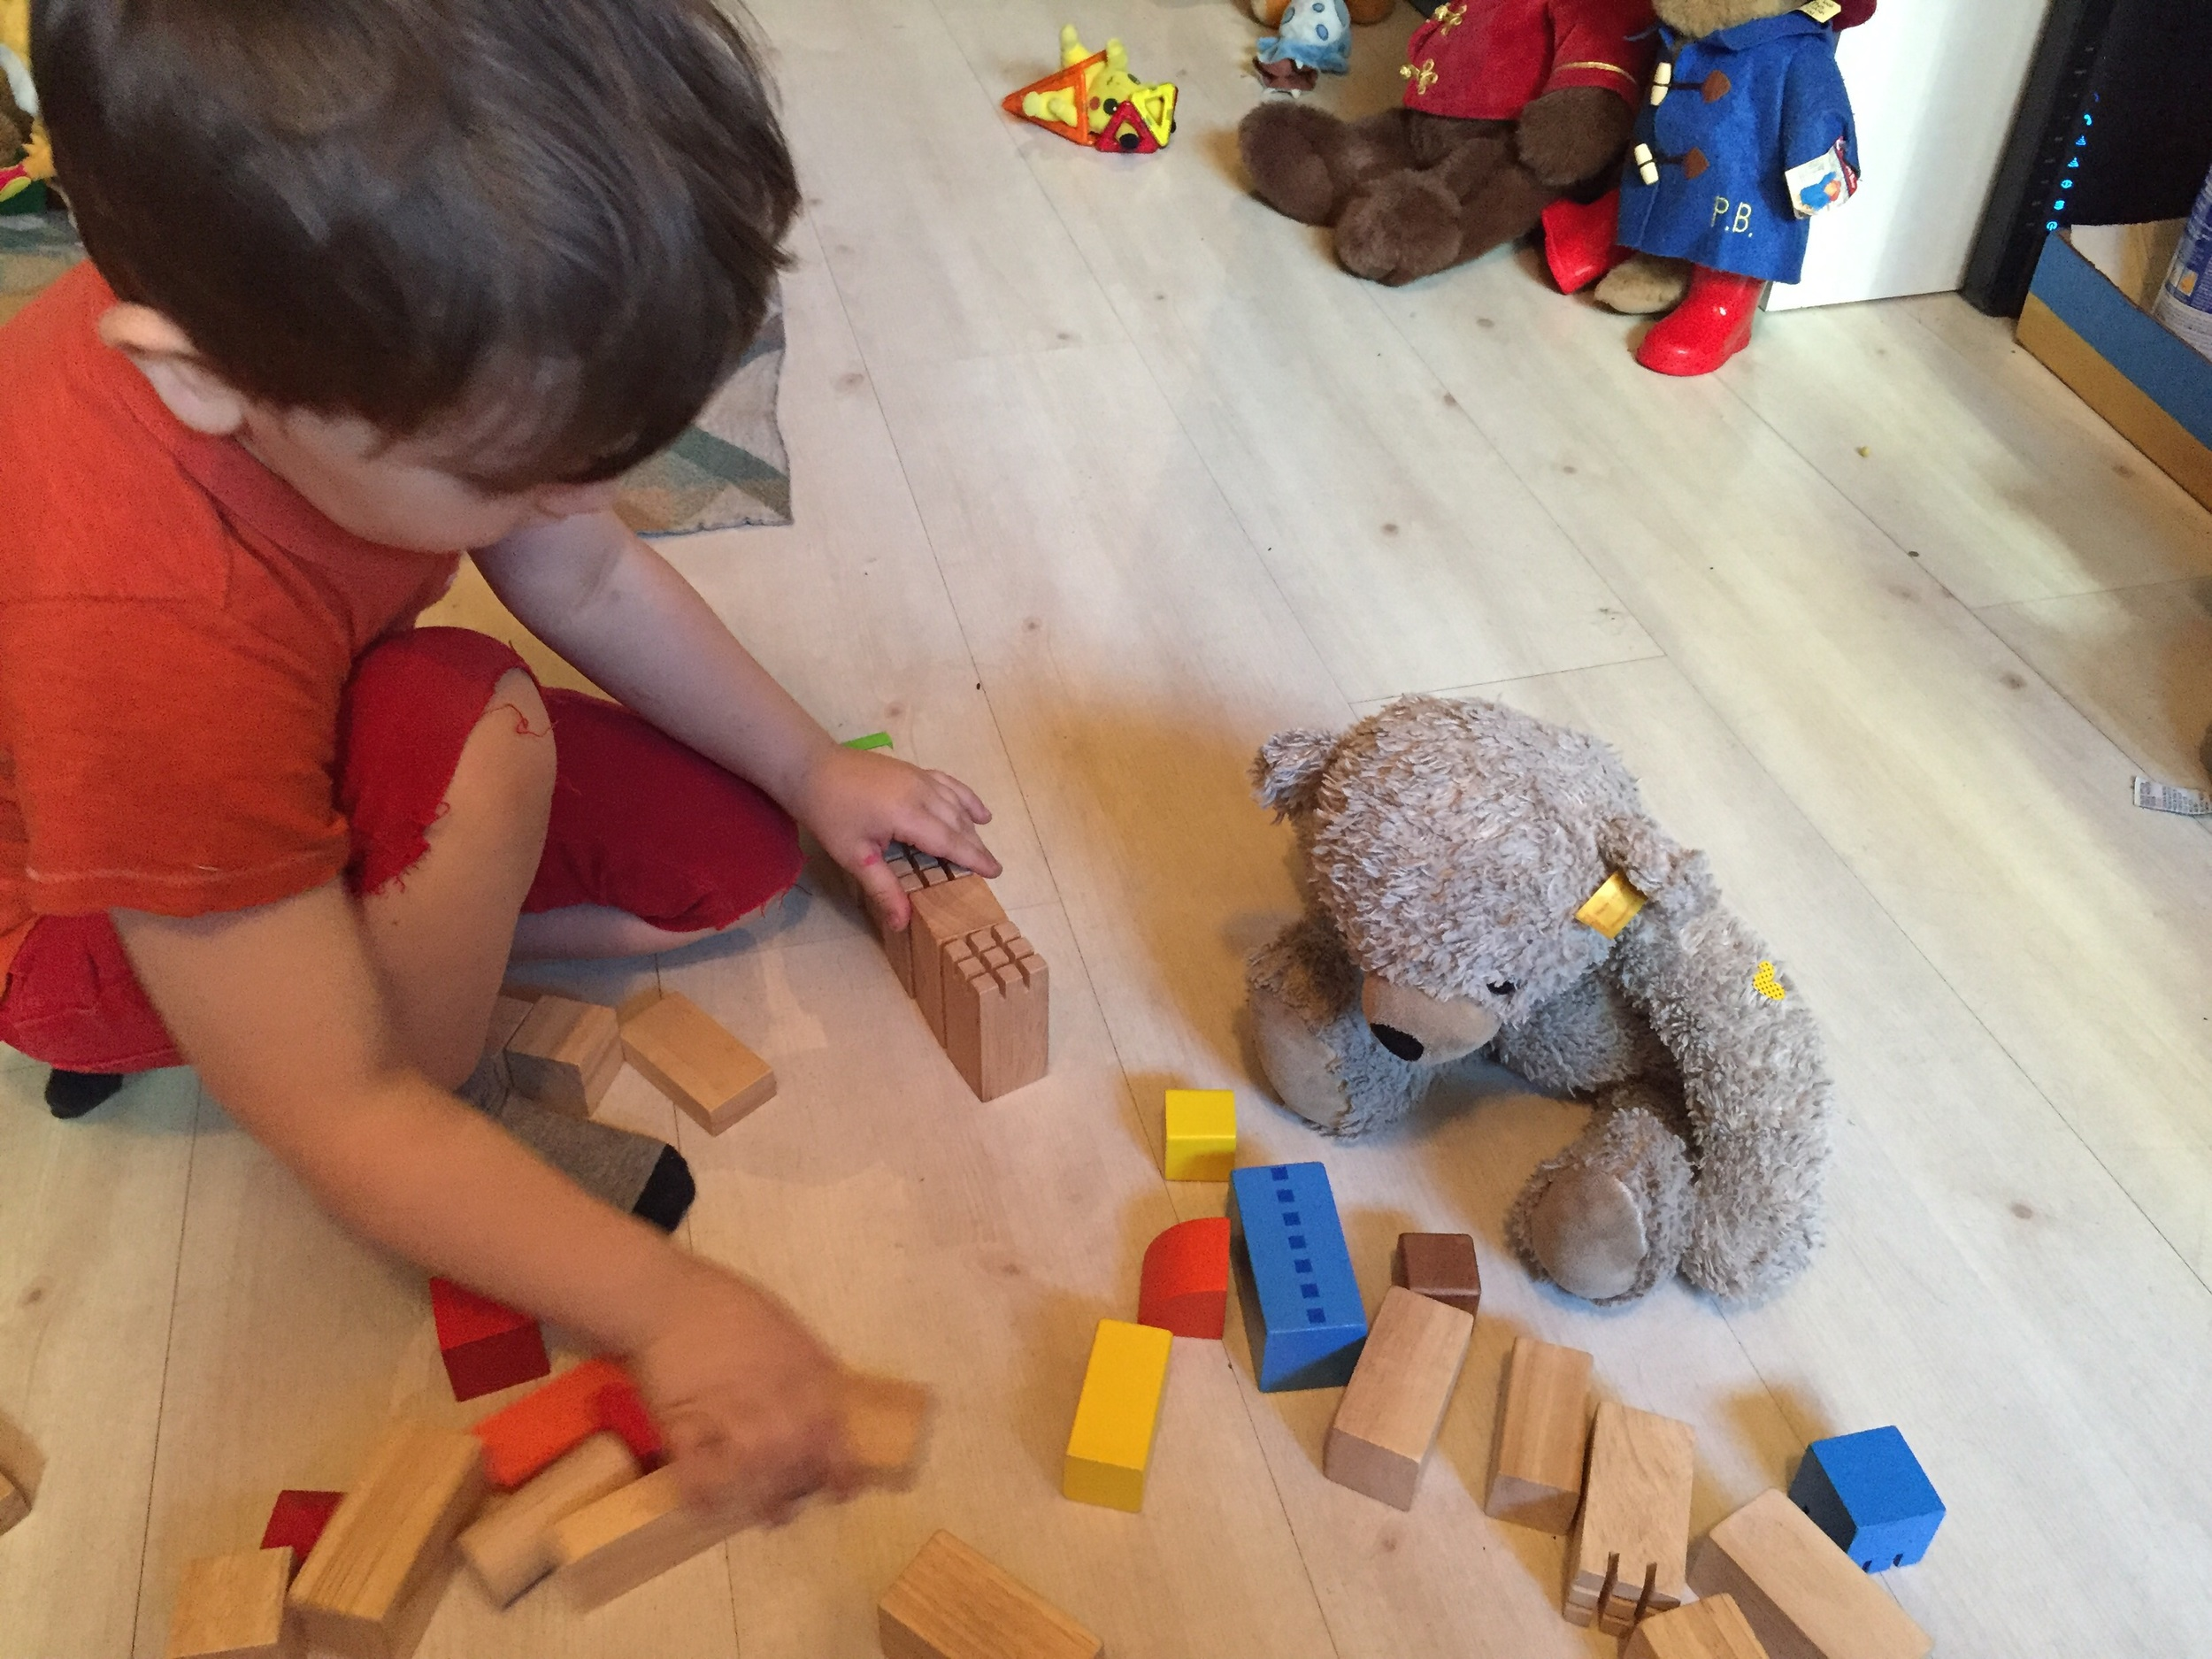 Arctics played with what was supposed to be Legos, but was actually a different kind of blocks